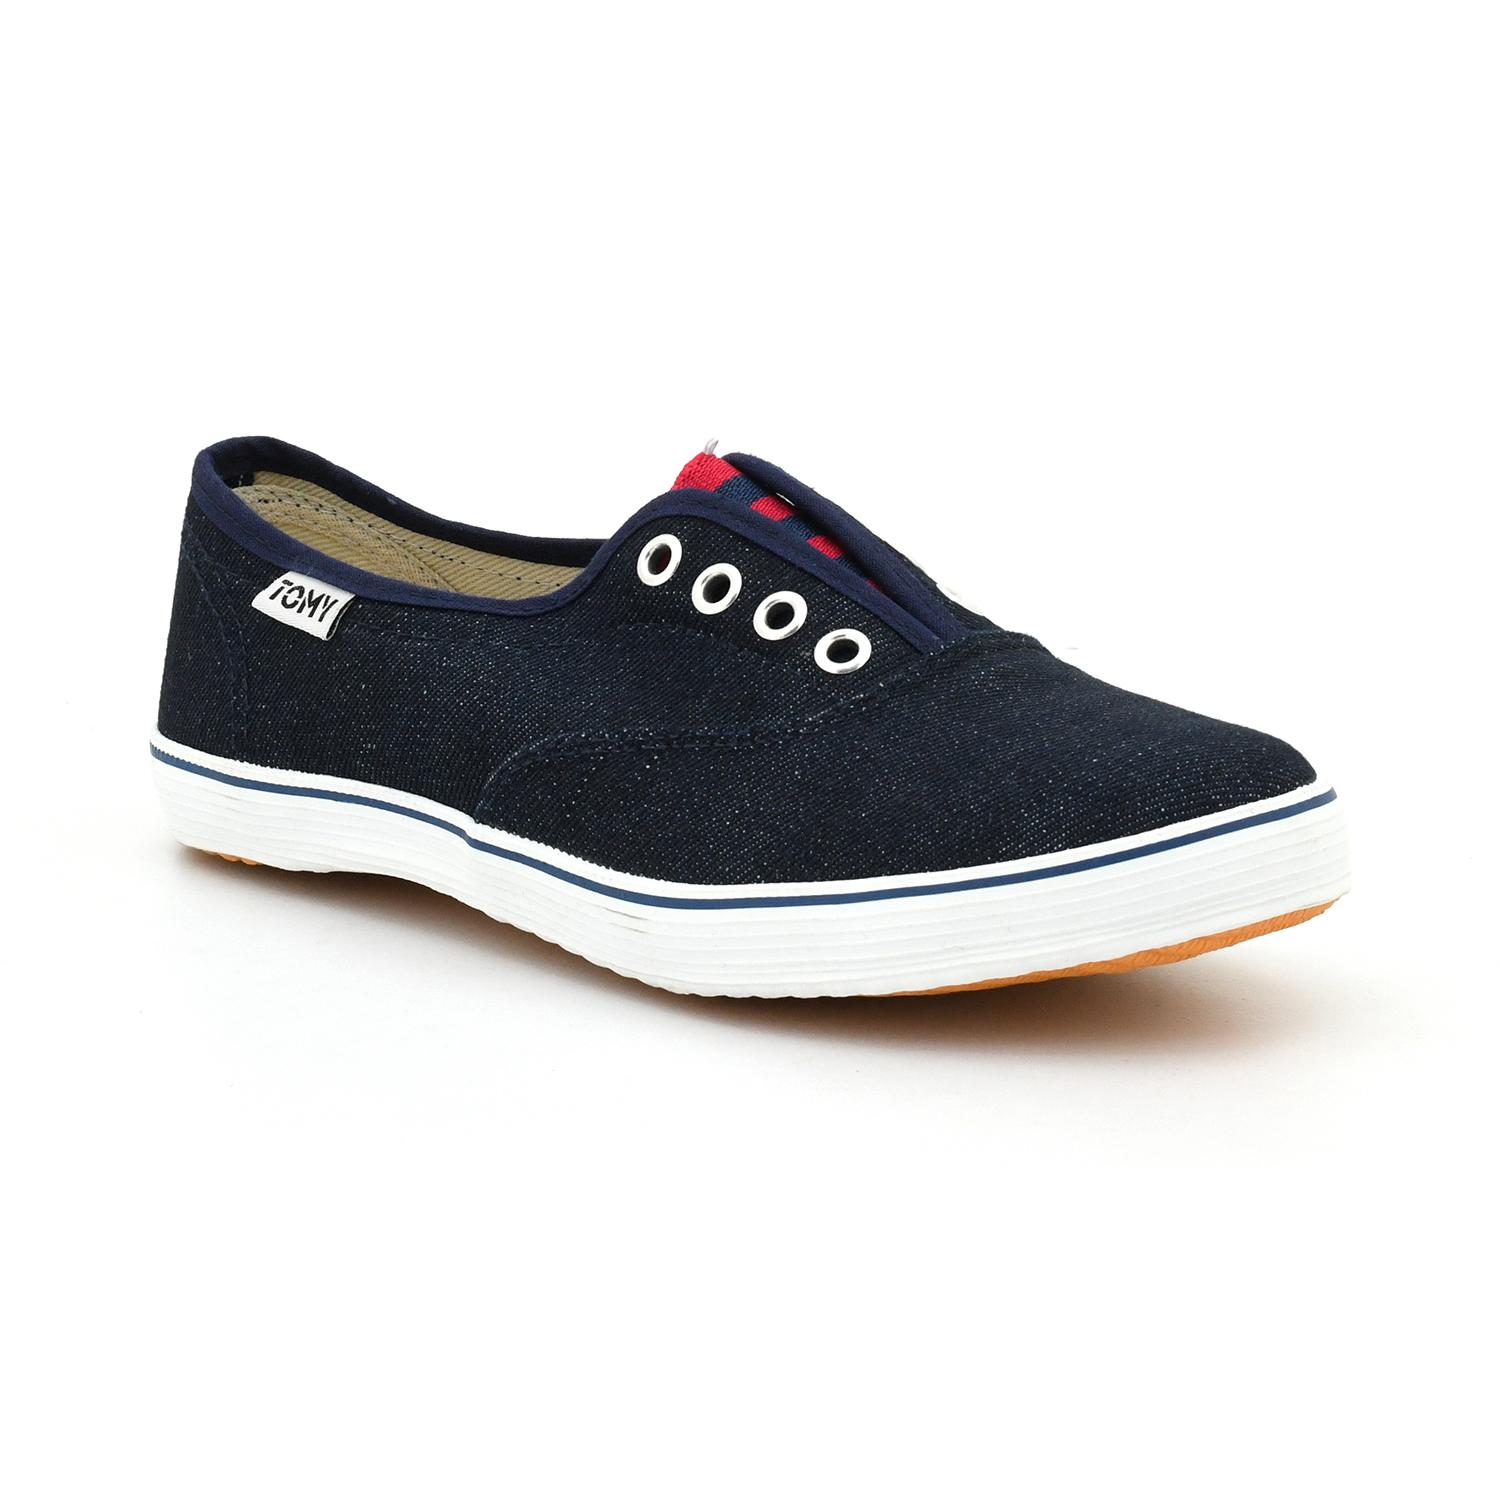 info for e16a0 c3aa9 Tomy Takkies Navy Blue Canvas Lifestyle Shoes For Women 5899093